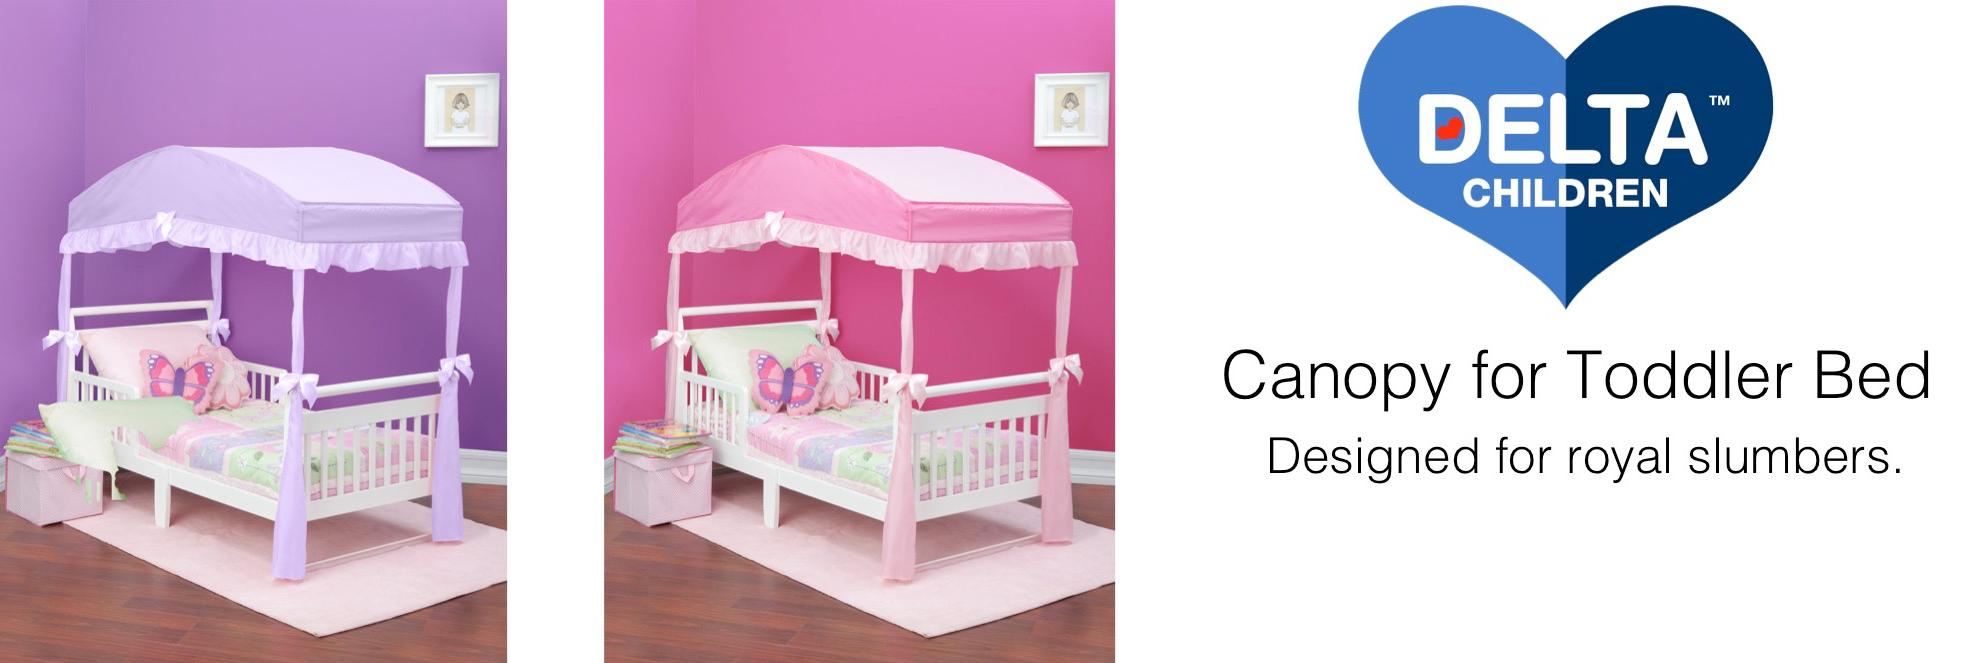 canopy toddler bed decor girls bedroom princess purple  sc 1 st  Amazon.com & Amazon.com : Delta Children Girls Canopy for Toddler Bed Pink ...